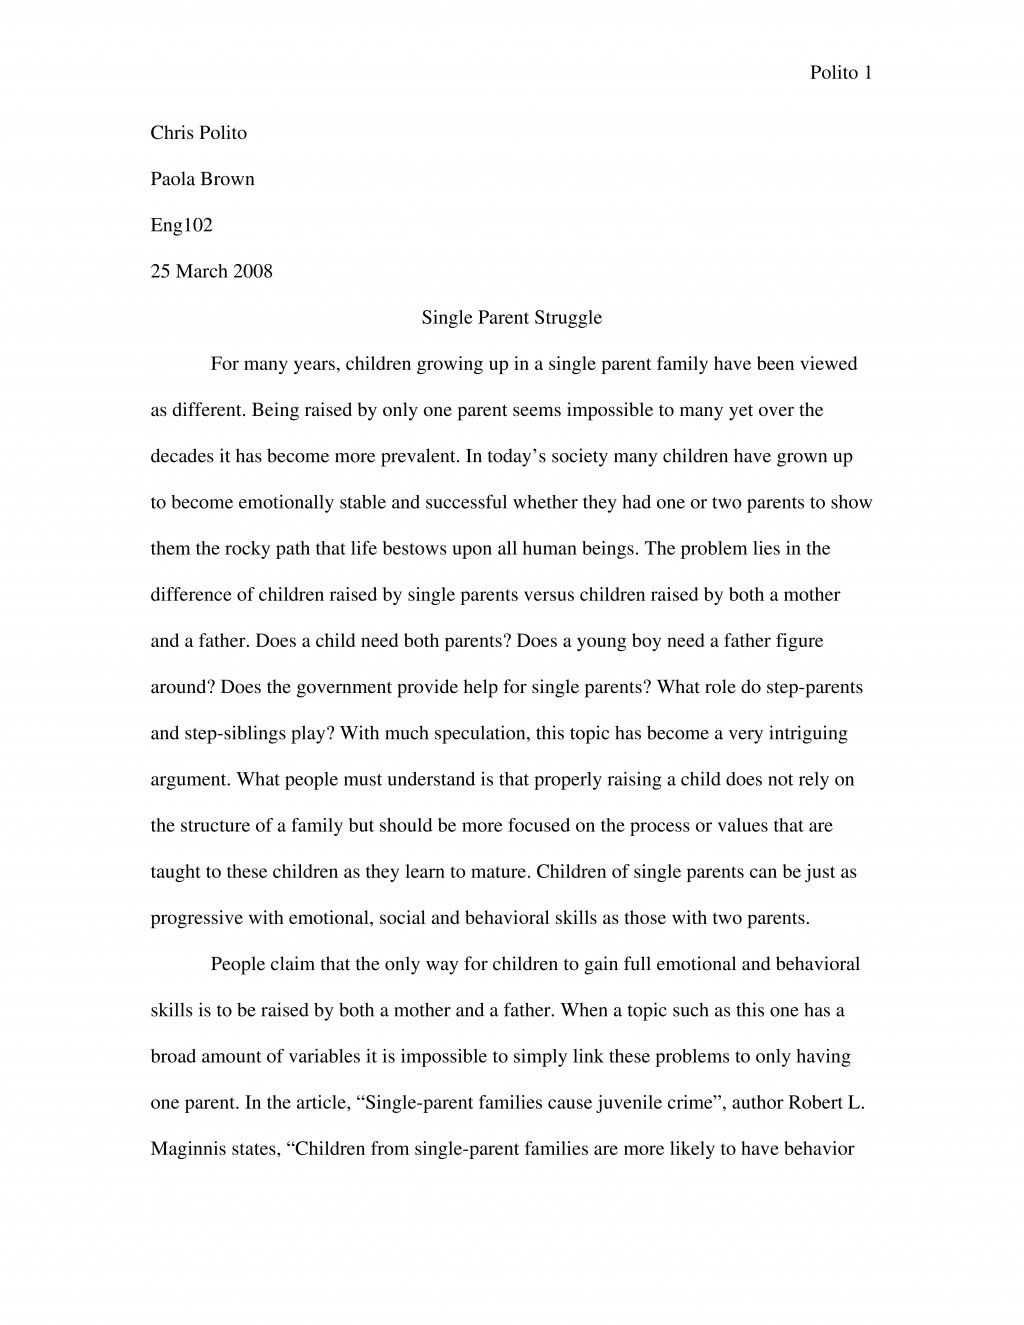 008 Essay Example Expository Samples Sample 2 Impressive Theme Examples High School For 7th Grade Large